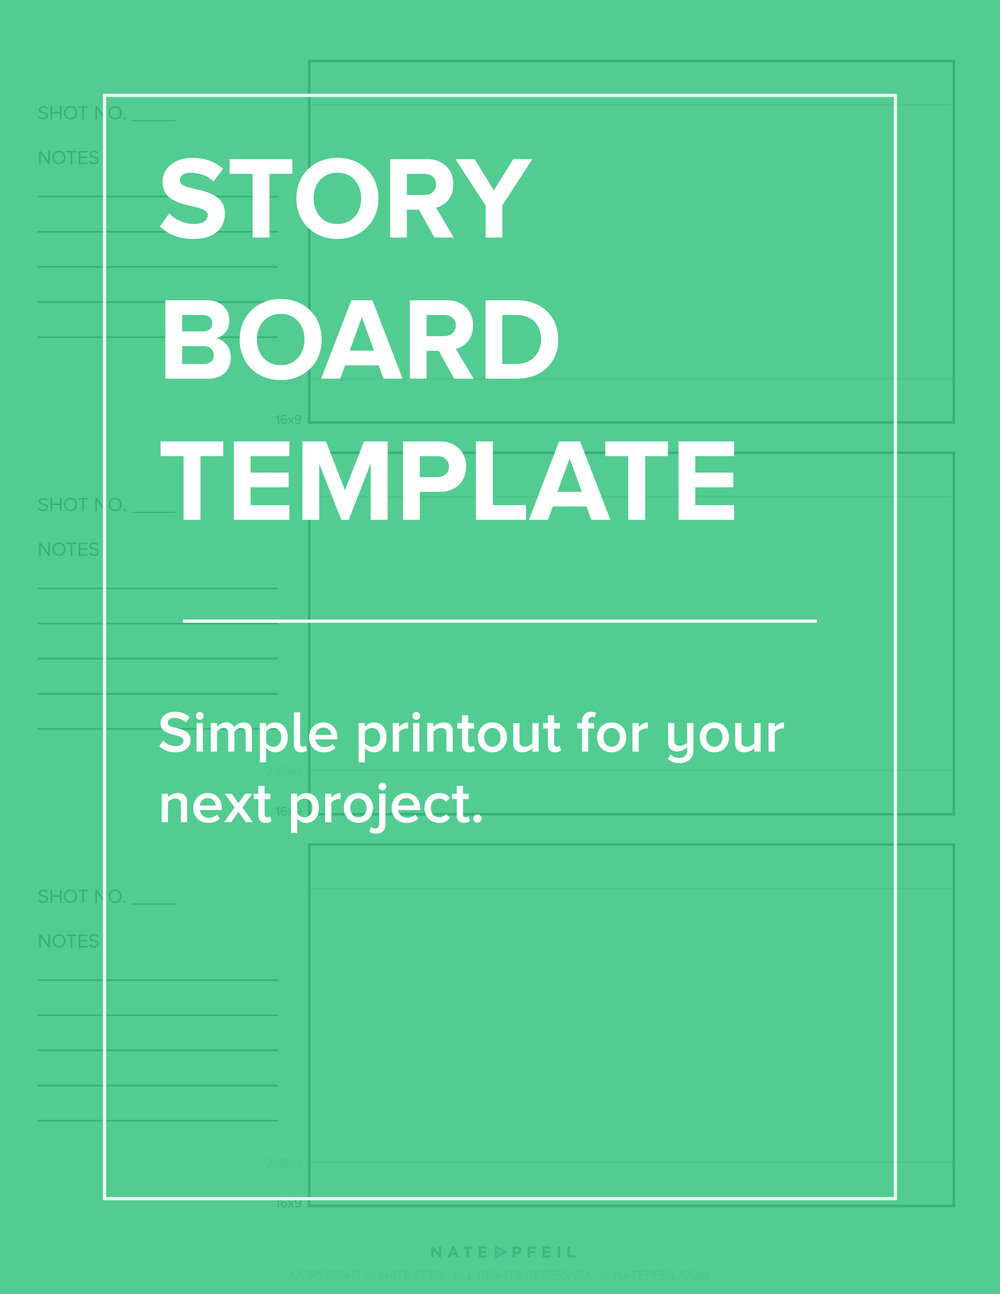 video-storyboard-template.jpg